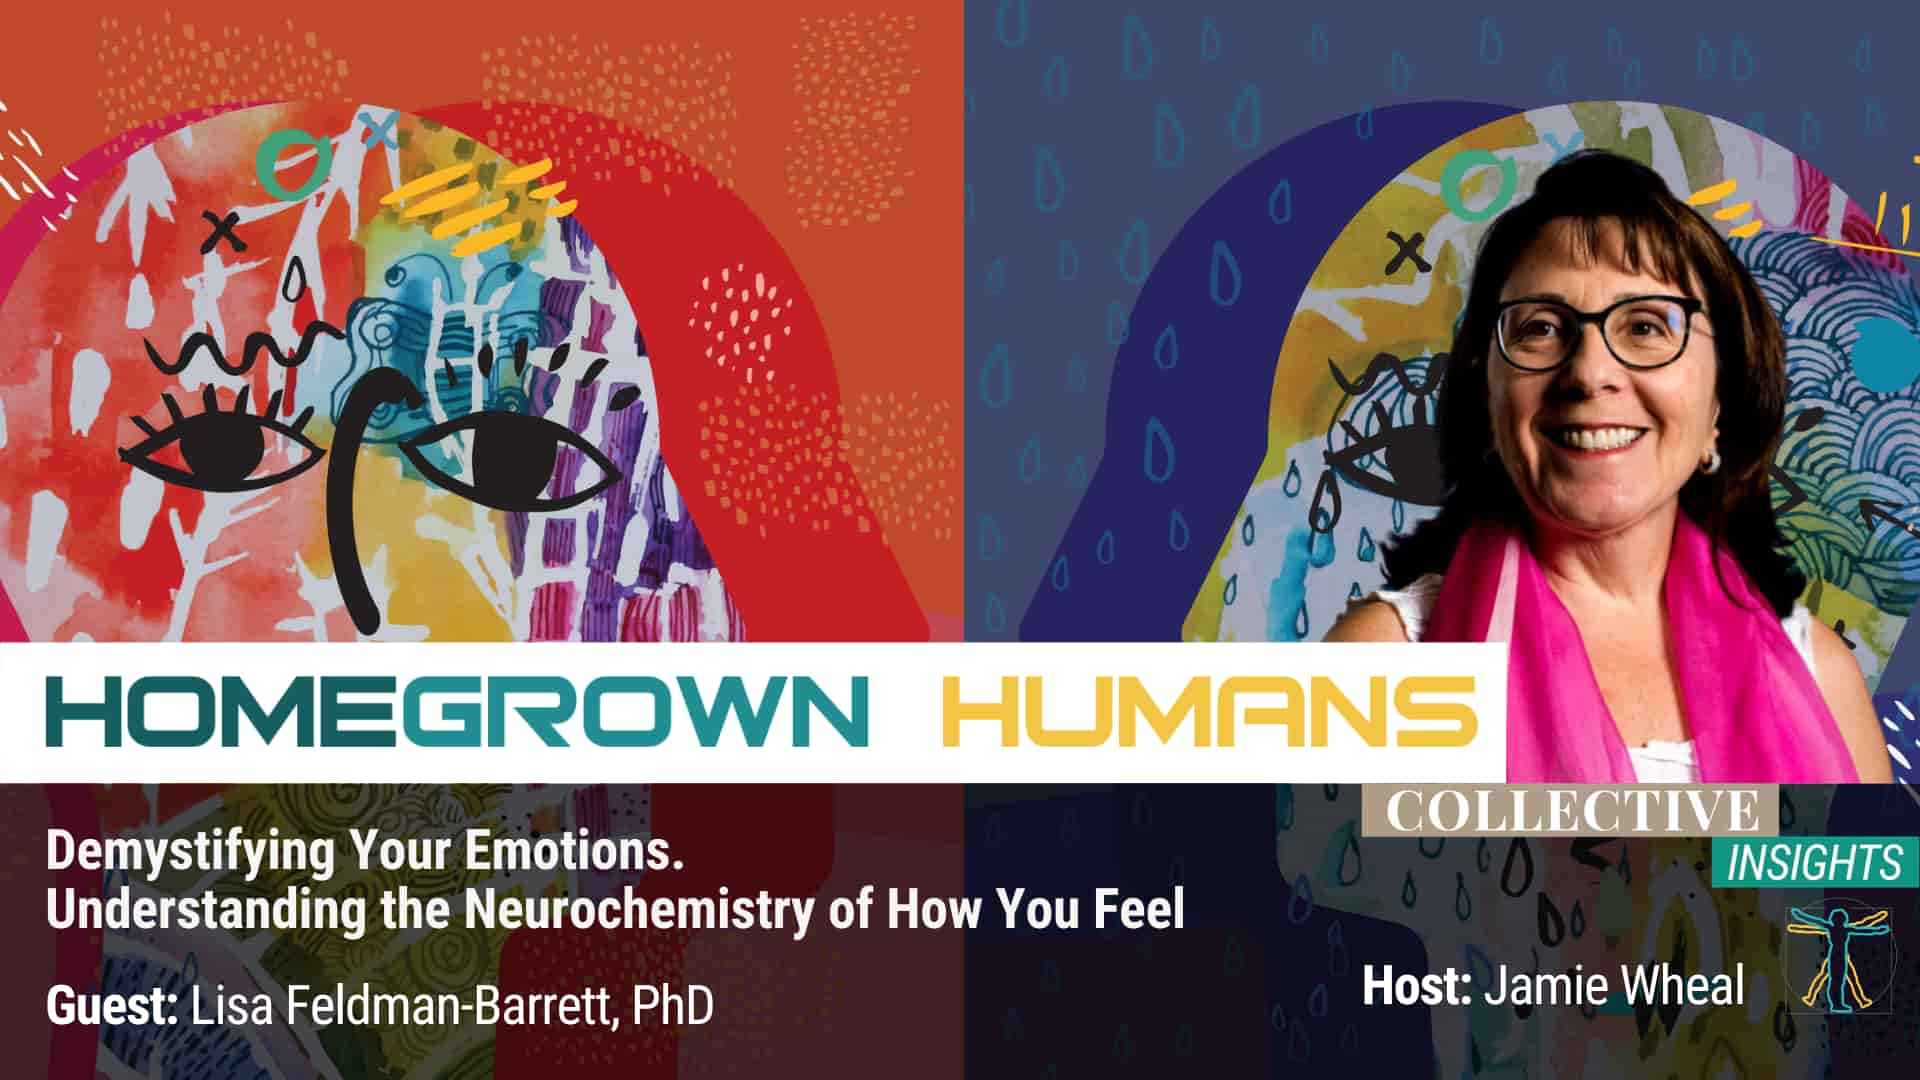 HomeGrown Humans - Lisa Feldman Barrett, Ph.D. - Neurochemistry - Hosted by Jamie Wheal